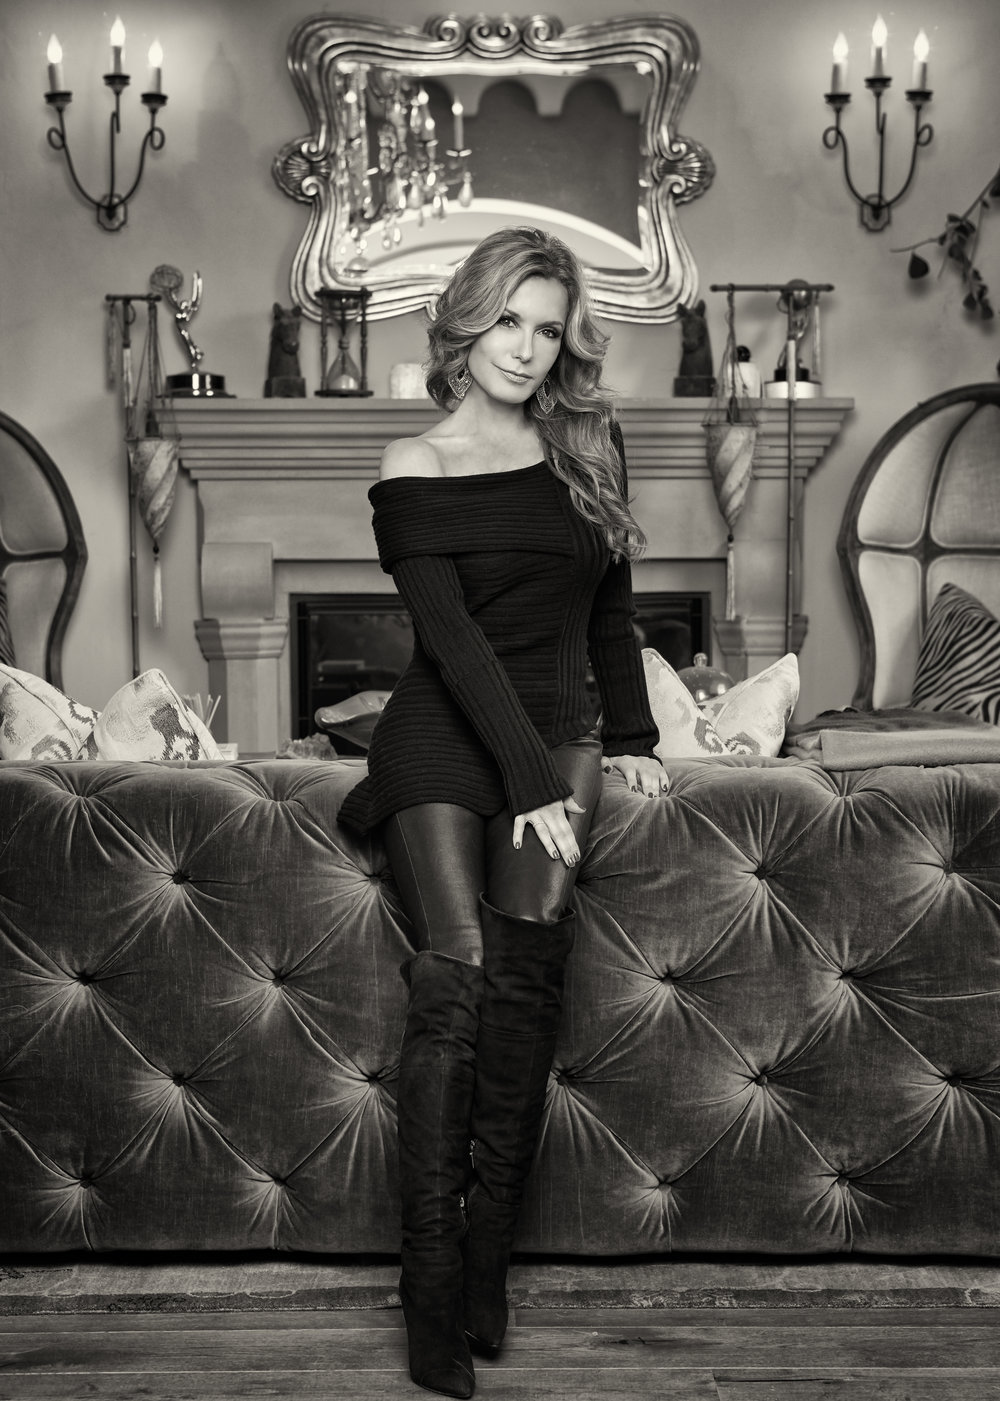 TRACEY BREGMAN-YOUNG AND THE RESTLESS